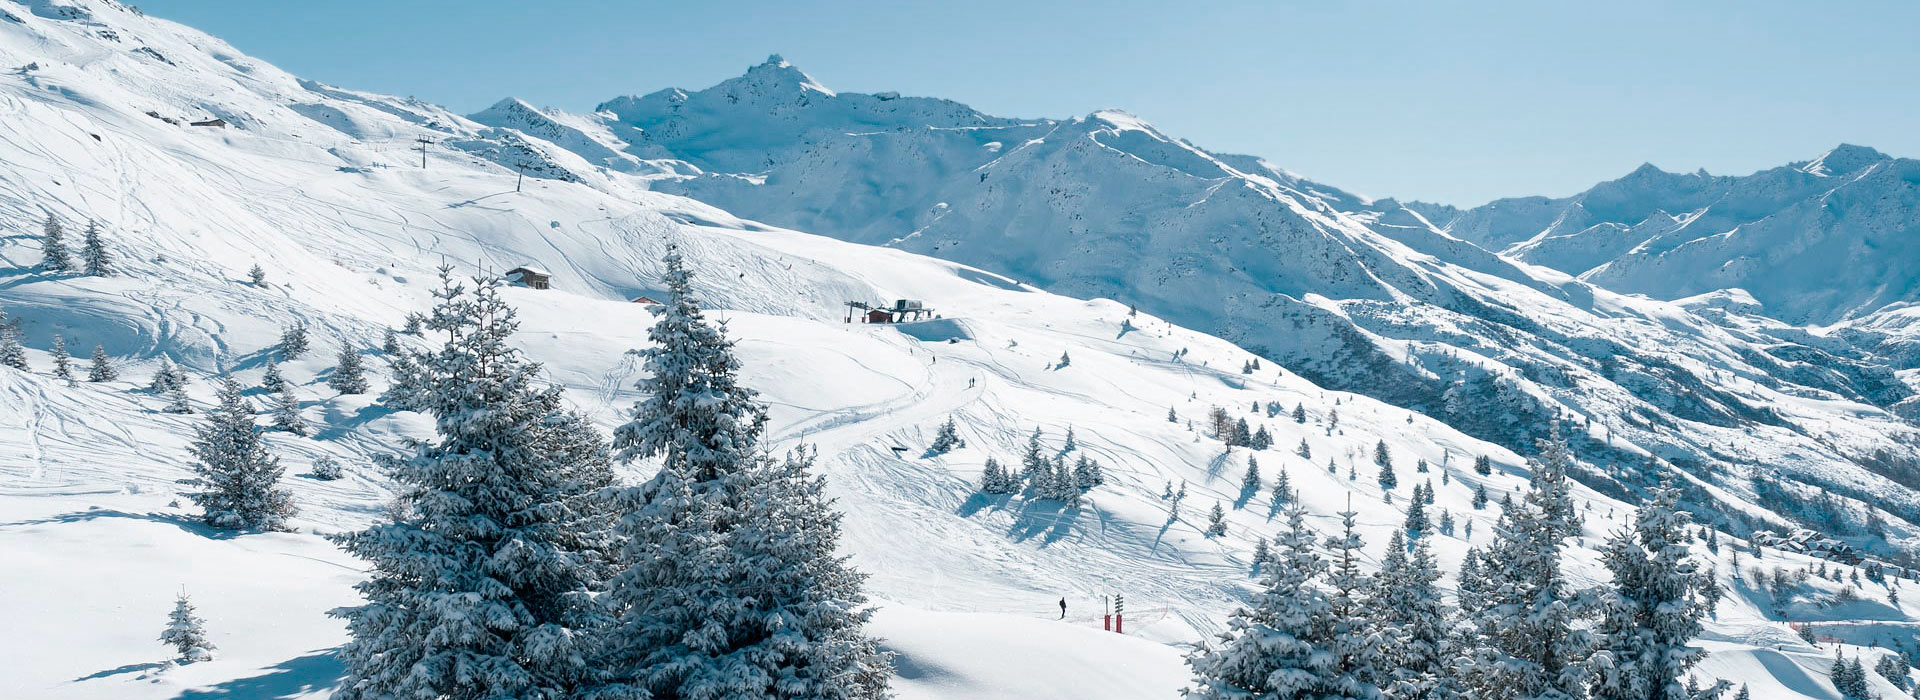 Wide overview of mountainside with snow-covered trees and skier on piste